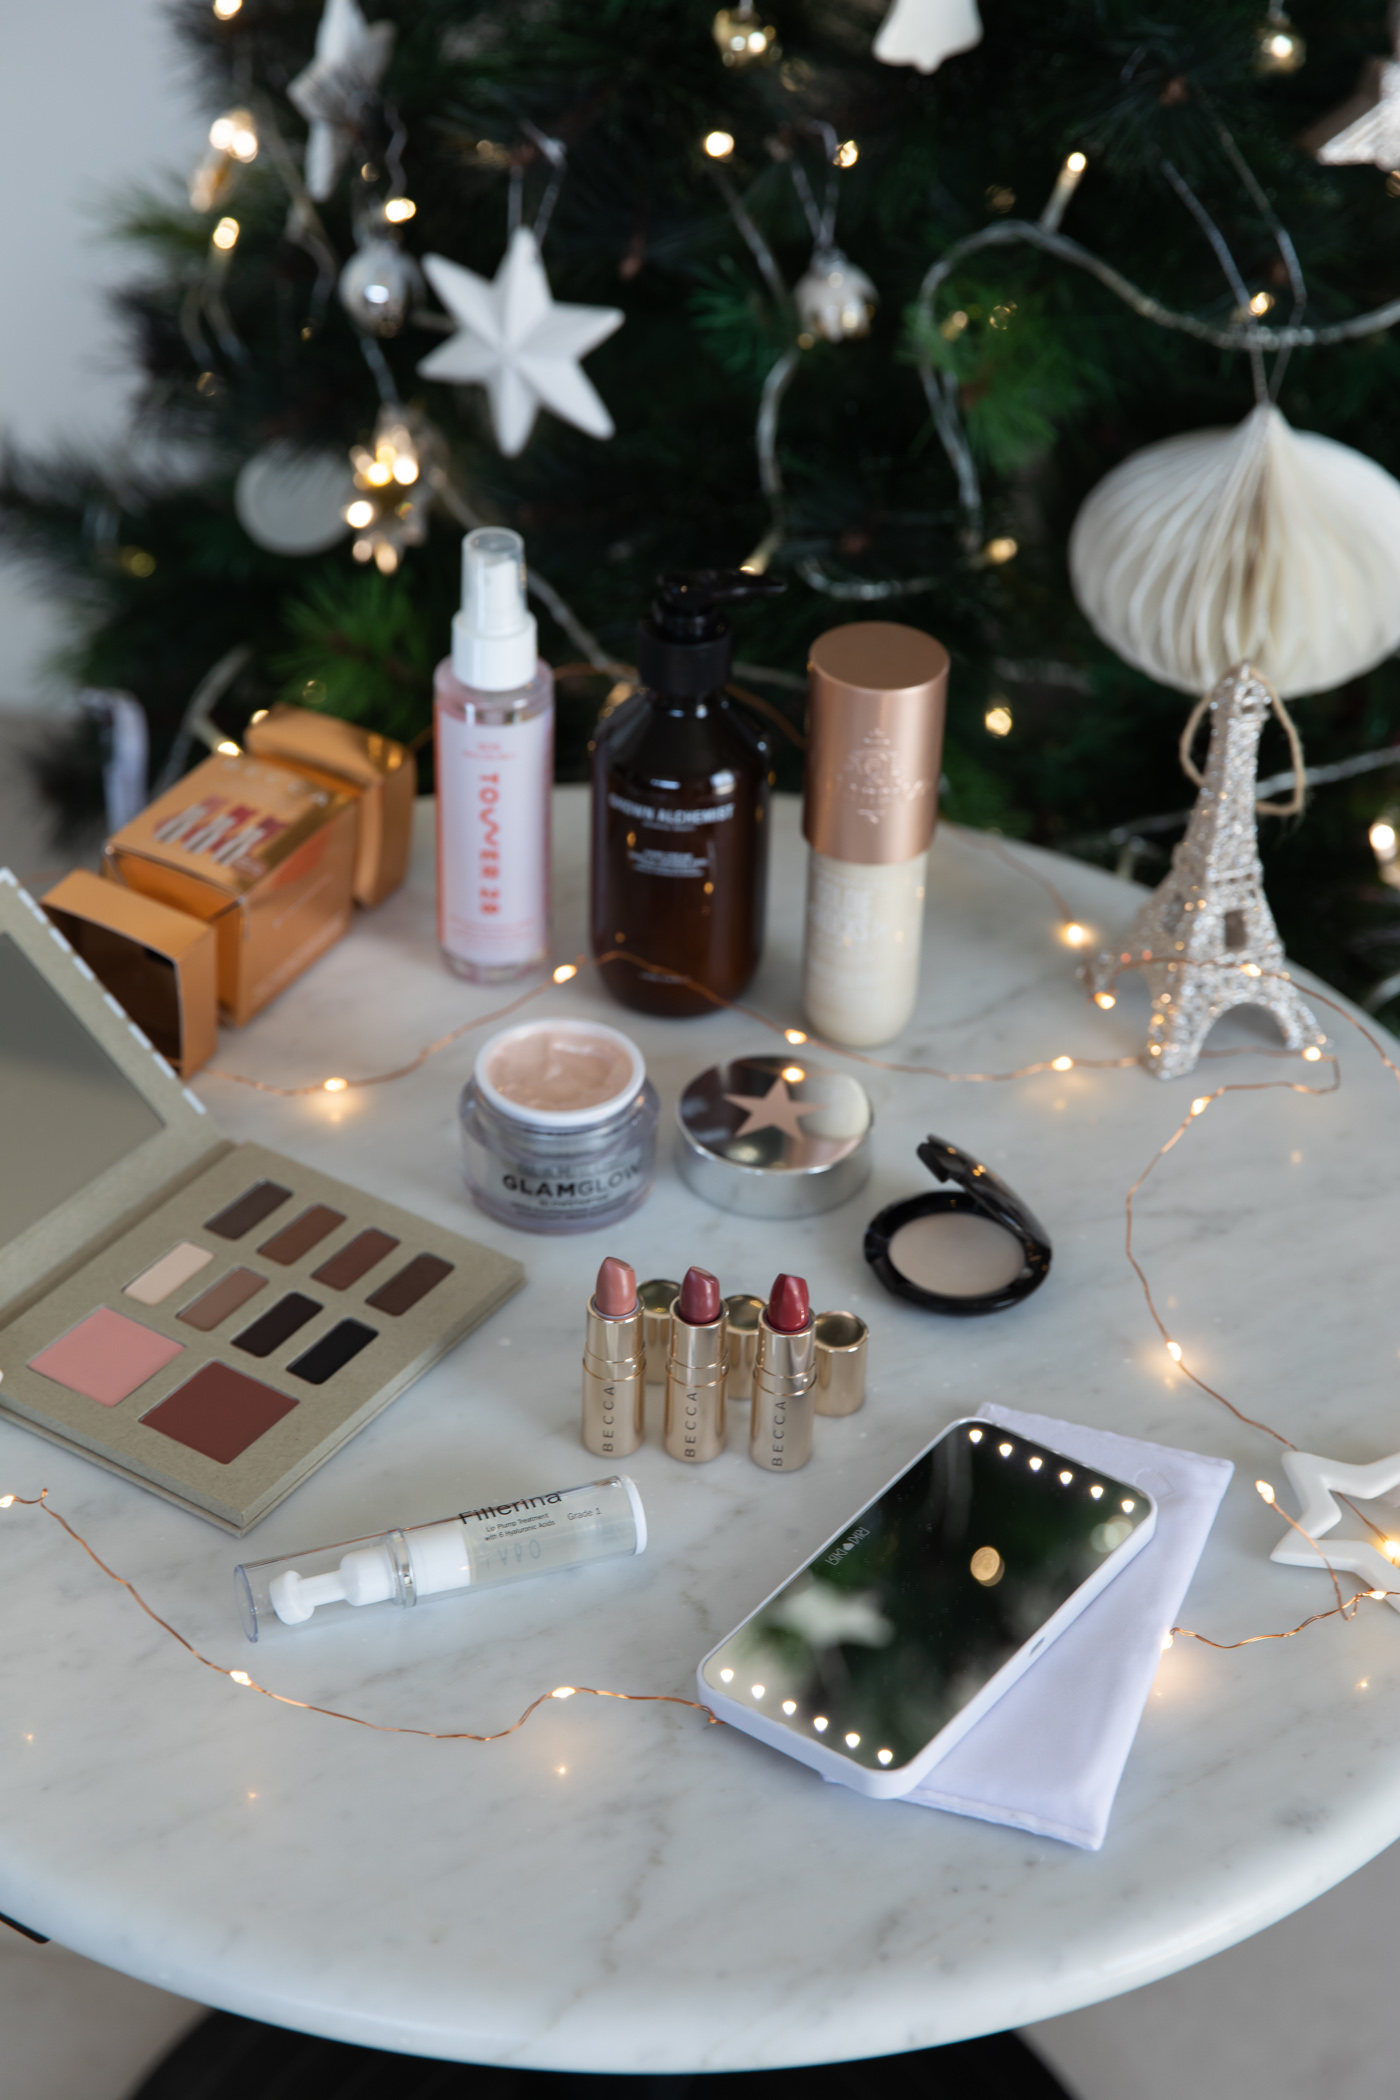 Revolve Beauty gift guide ideas under the tree for Christmas